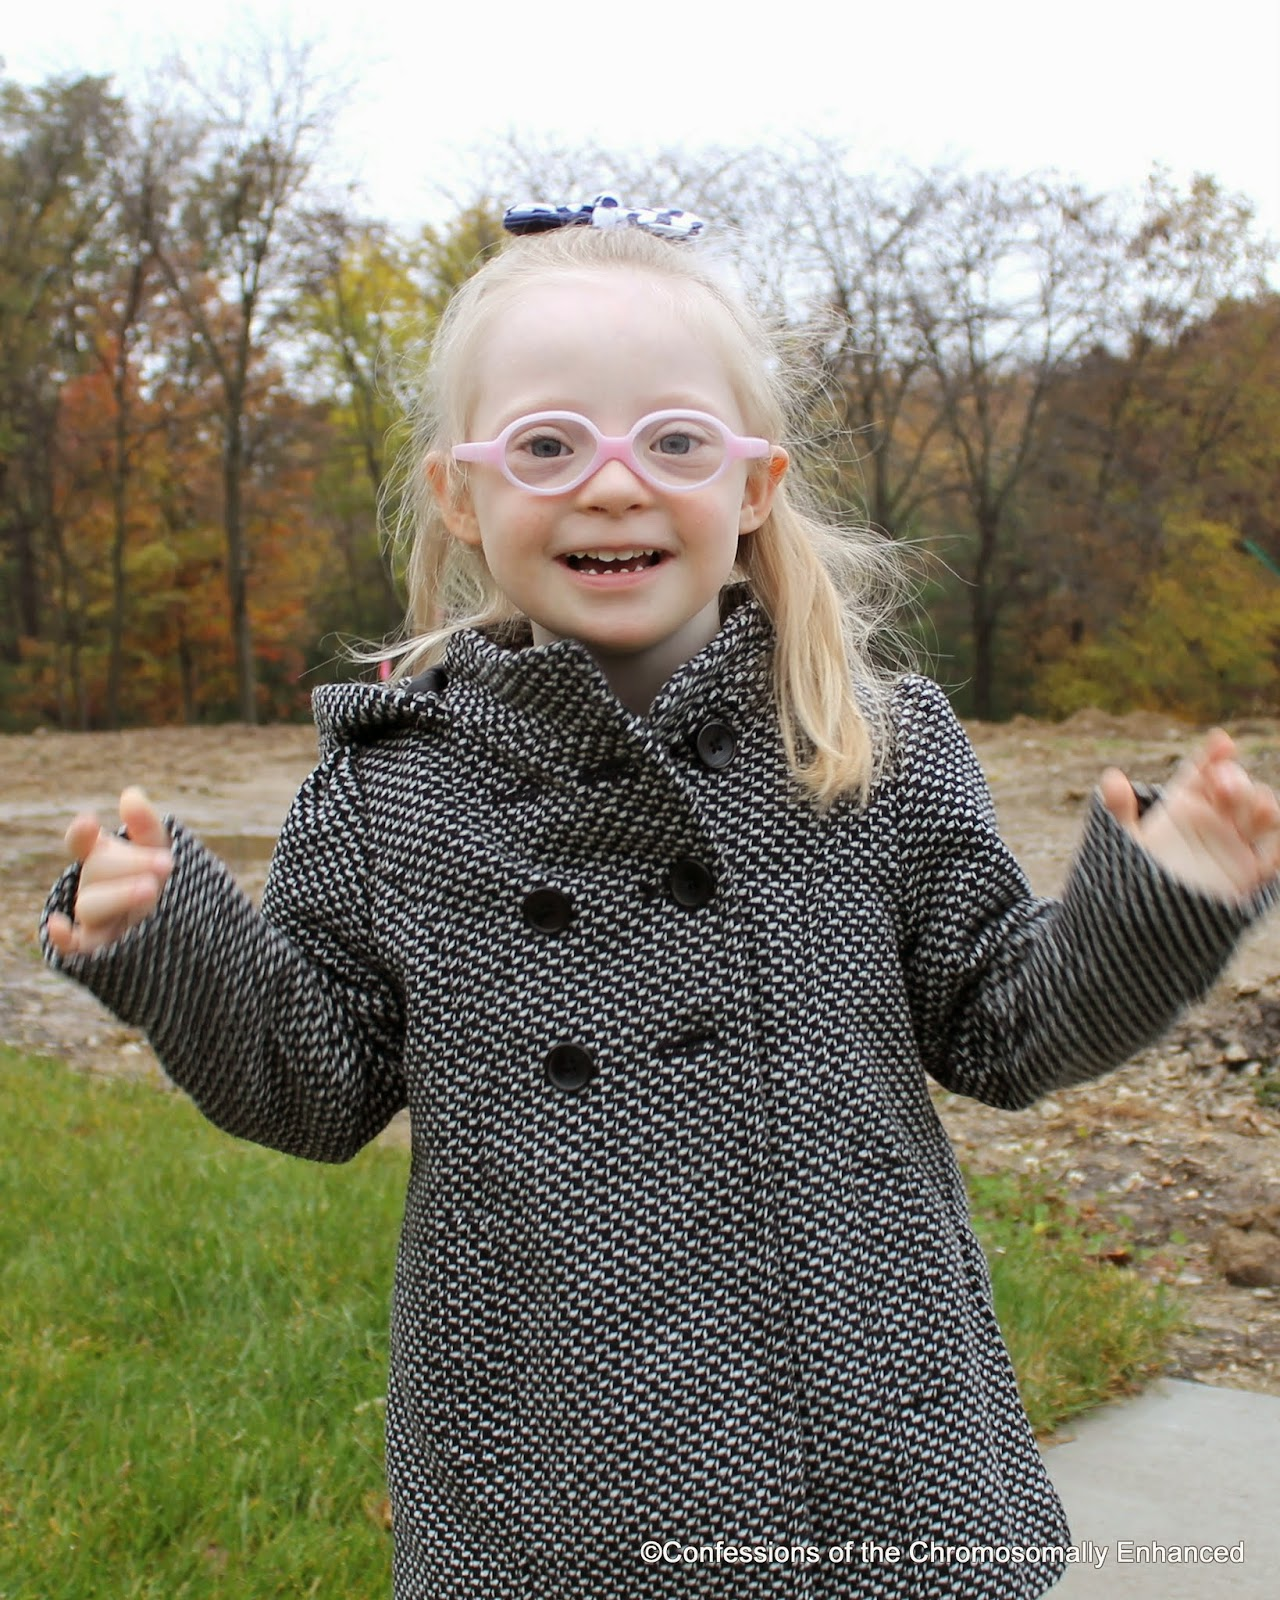 Confessions of the Chromosomally Enhanced: Down syndrome and